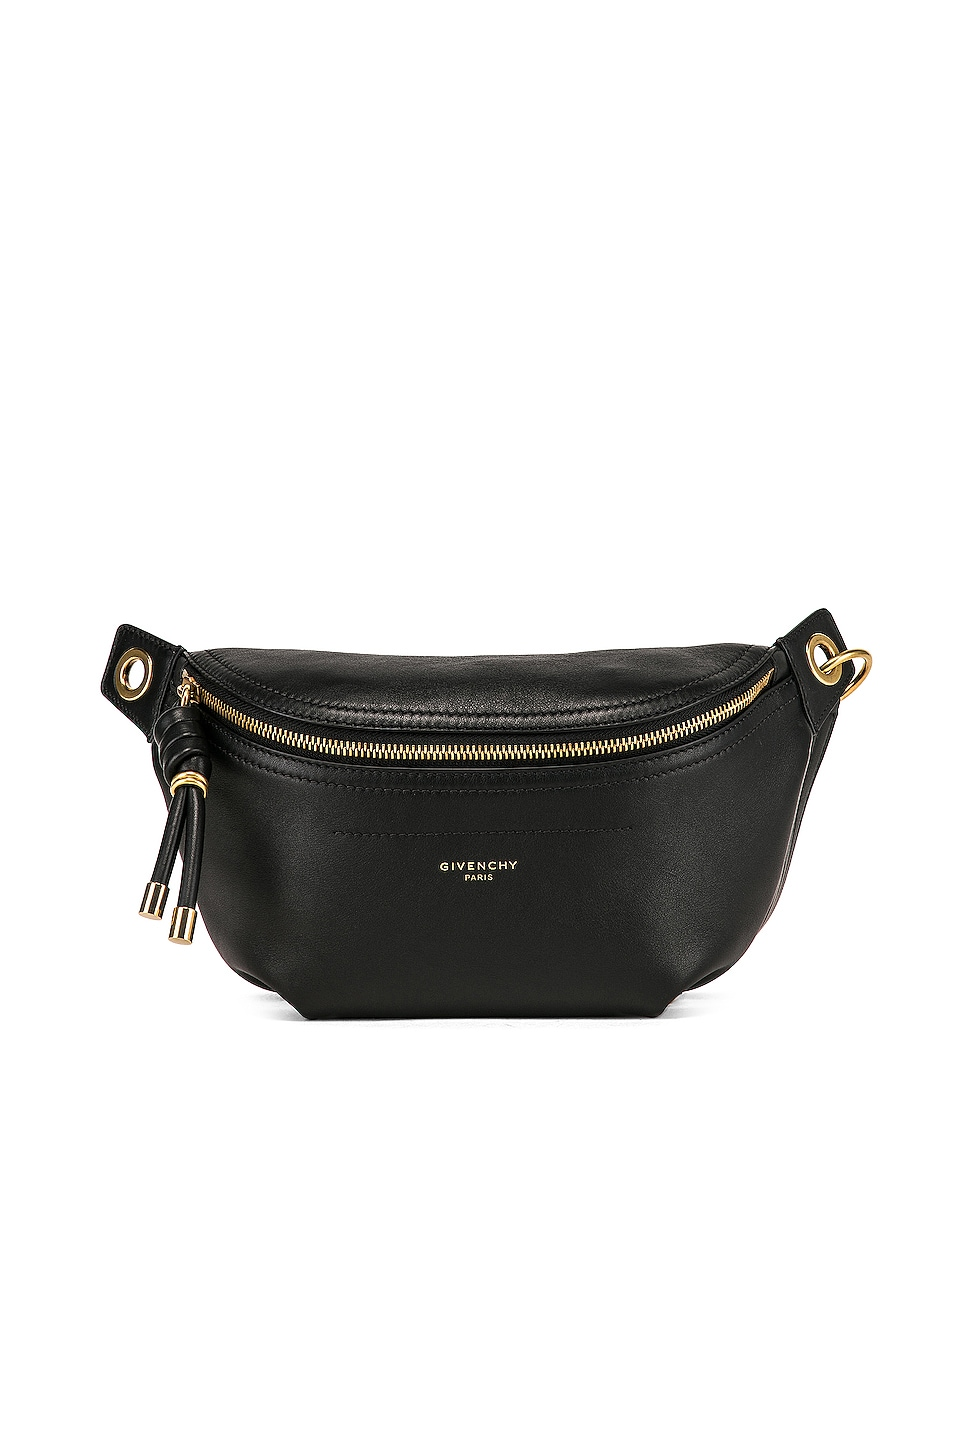 Image 1 of Givenchy Whip Chain Belt Bag in Black